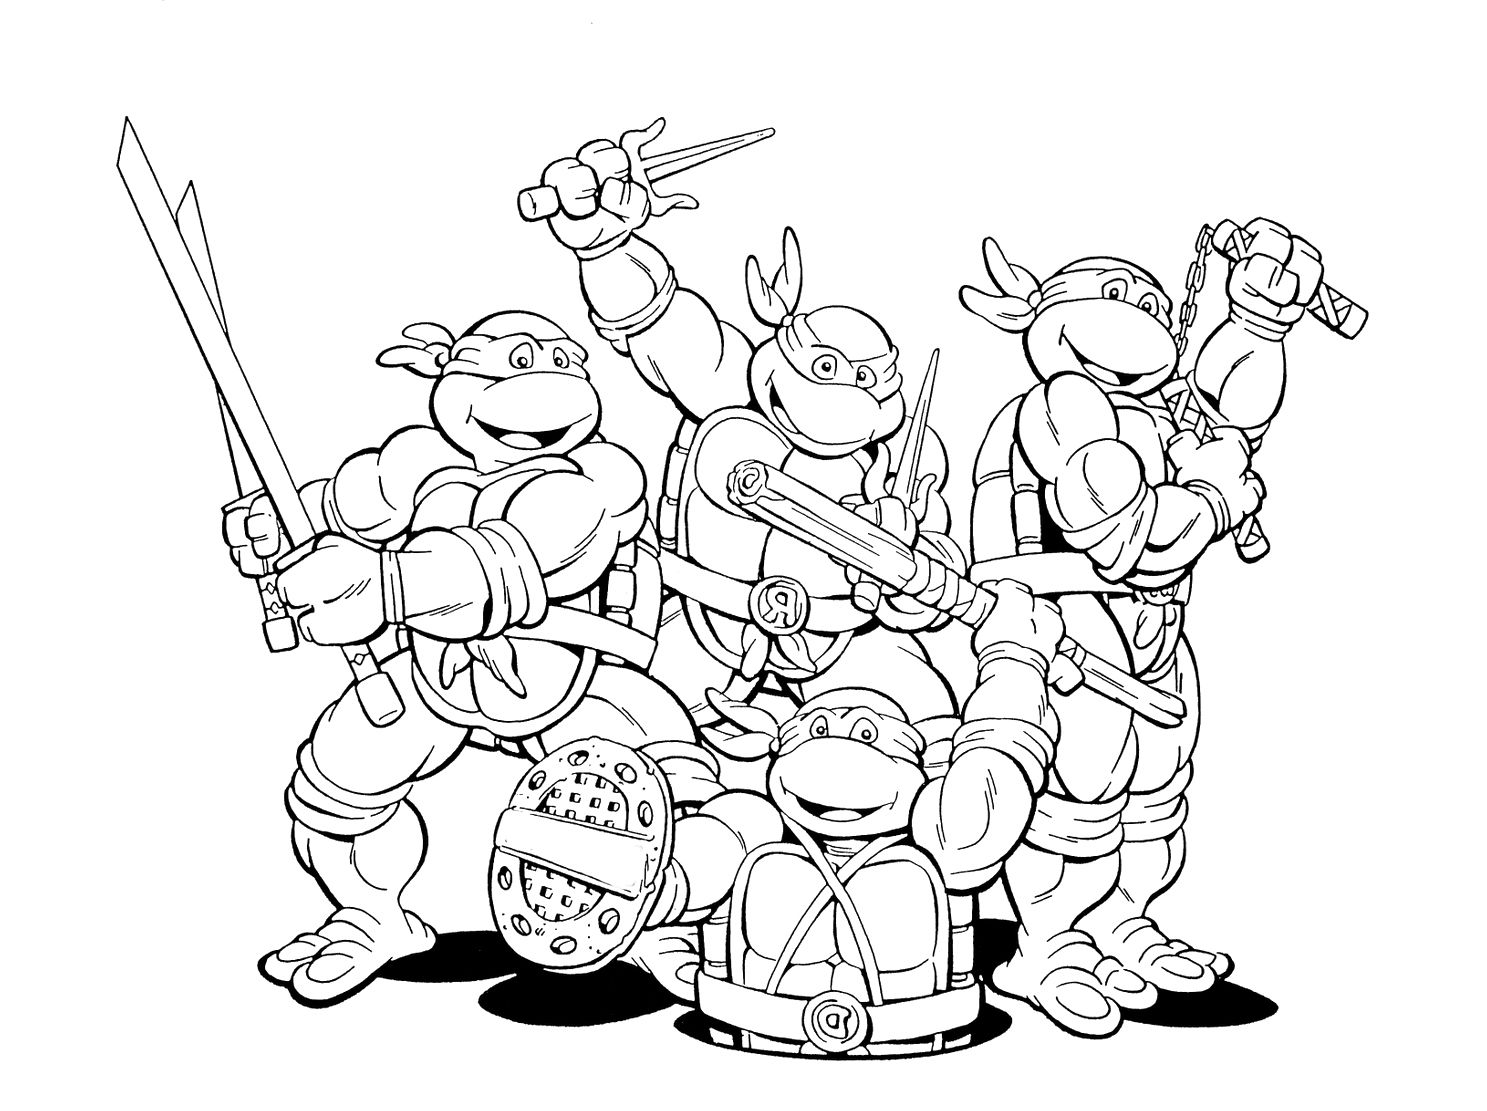 Cute Ninja Turtles Printable Coloring Pages Kolorowanki